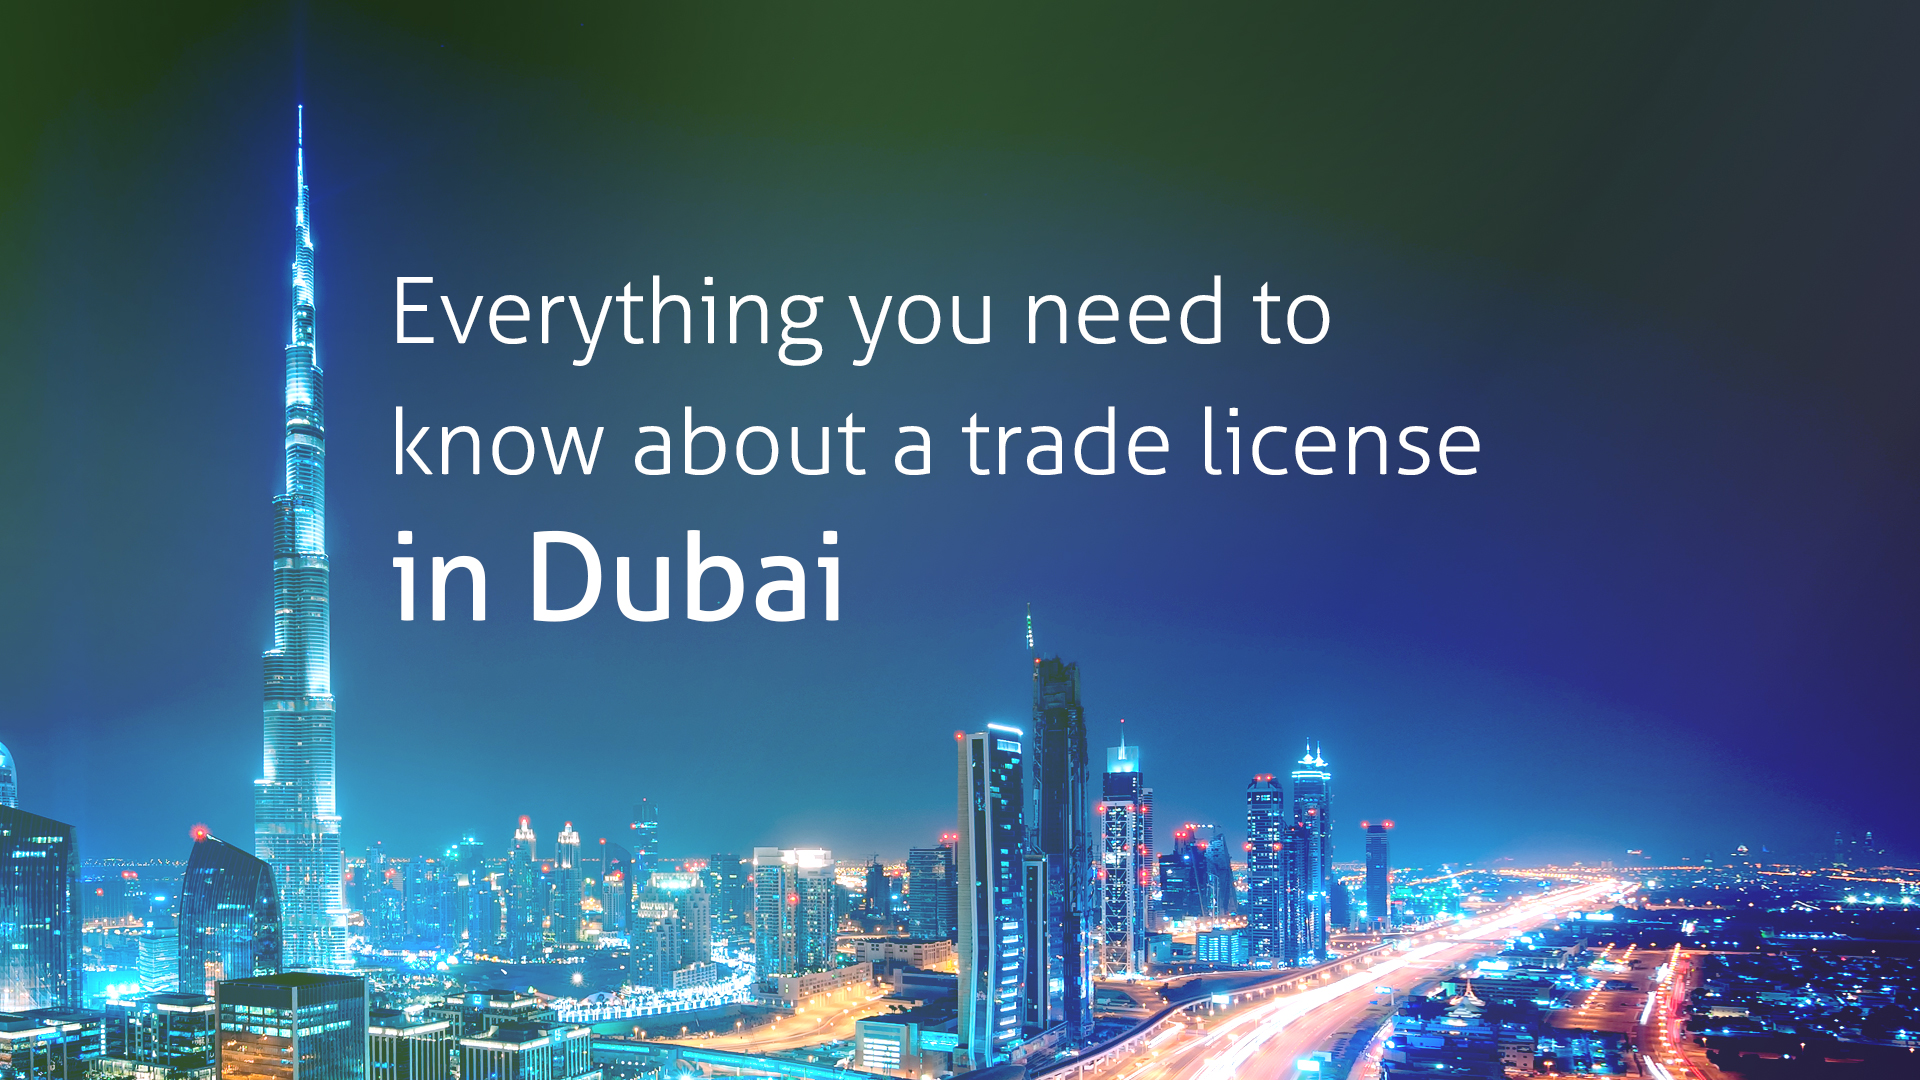 Everything you need to know about trade license in Dubai